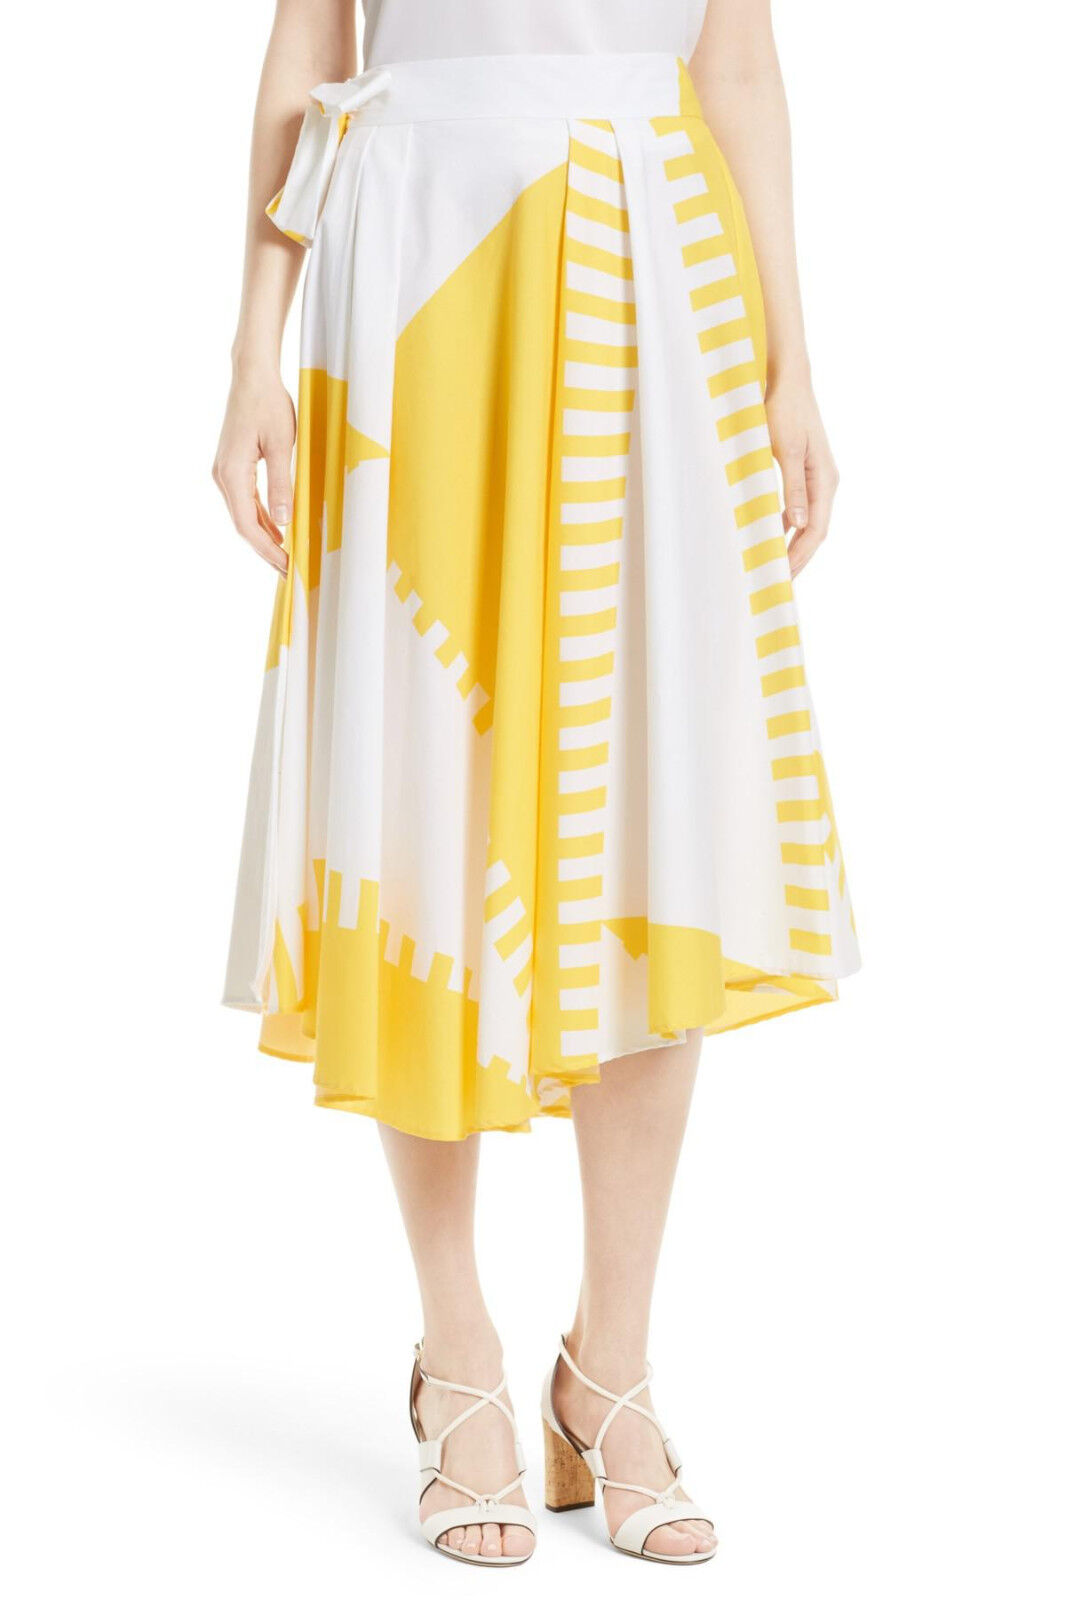 NWT MILLY Peyton Wrap Skirt Yellow White Women's 4  475